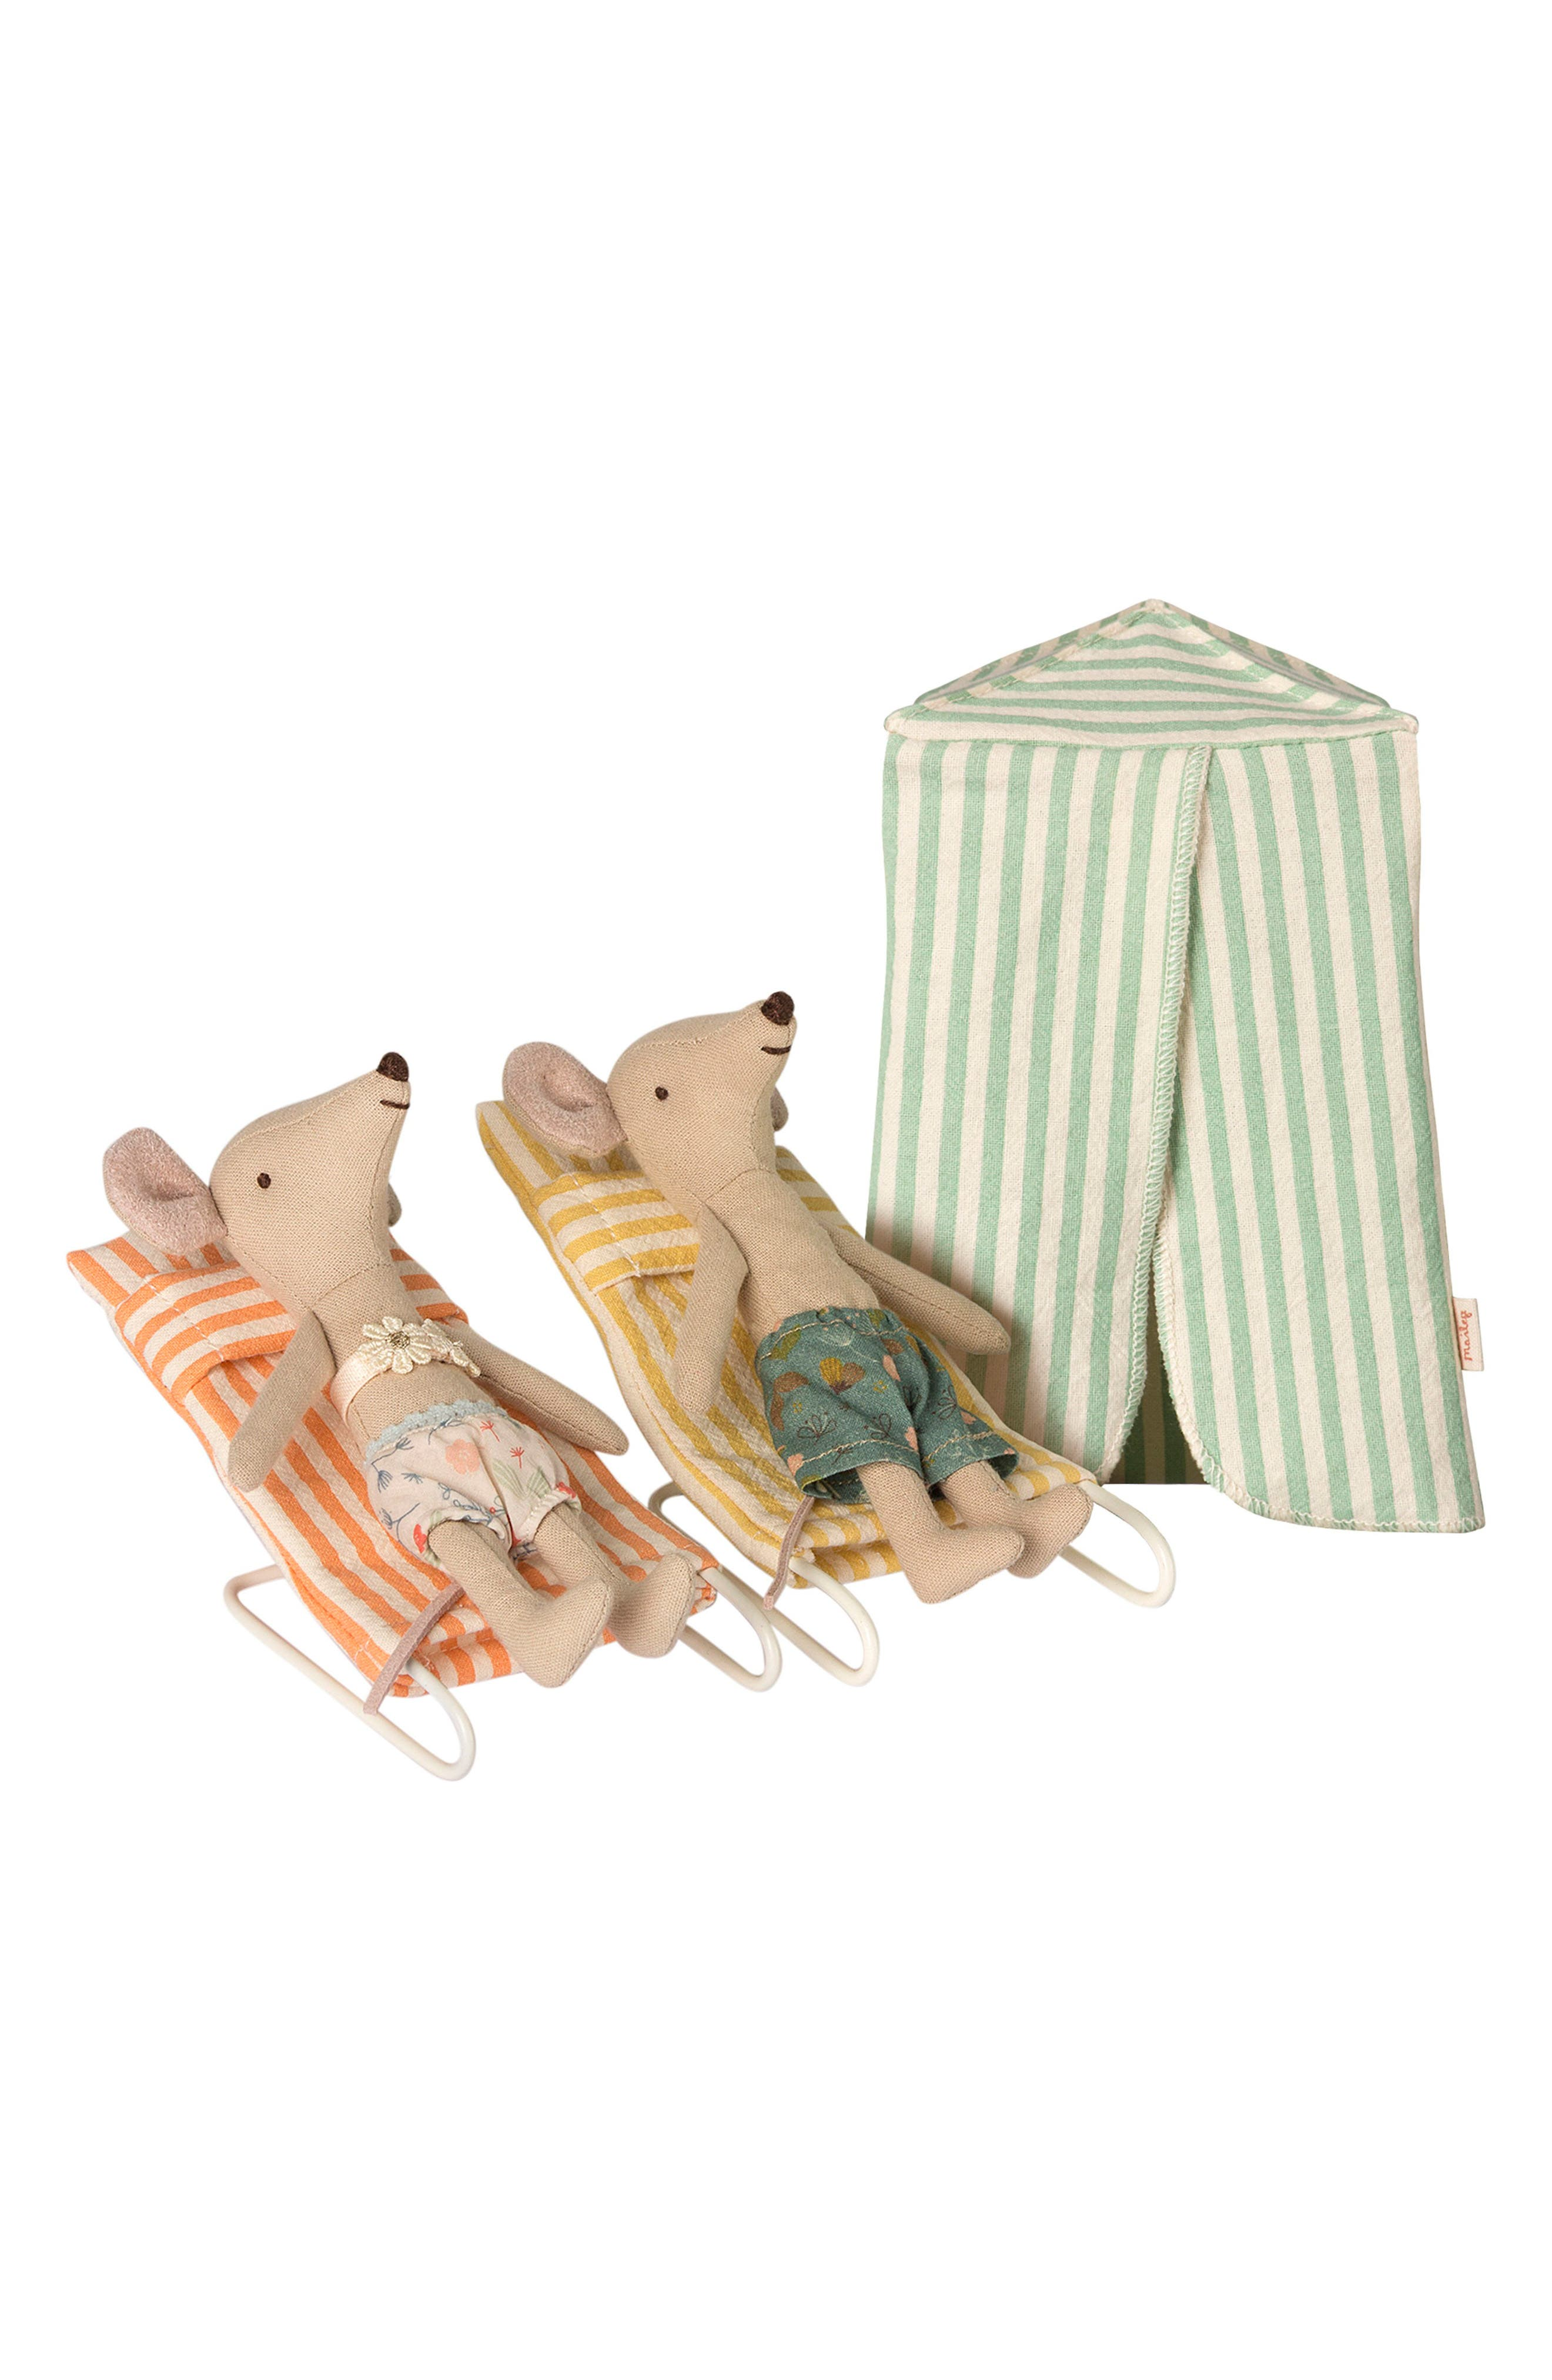 5-Piece Mouse Vacation Play Set,                         Main,                         color, MULTI COLOR STRIBET